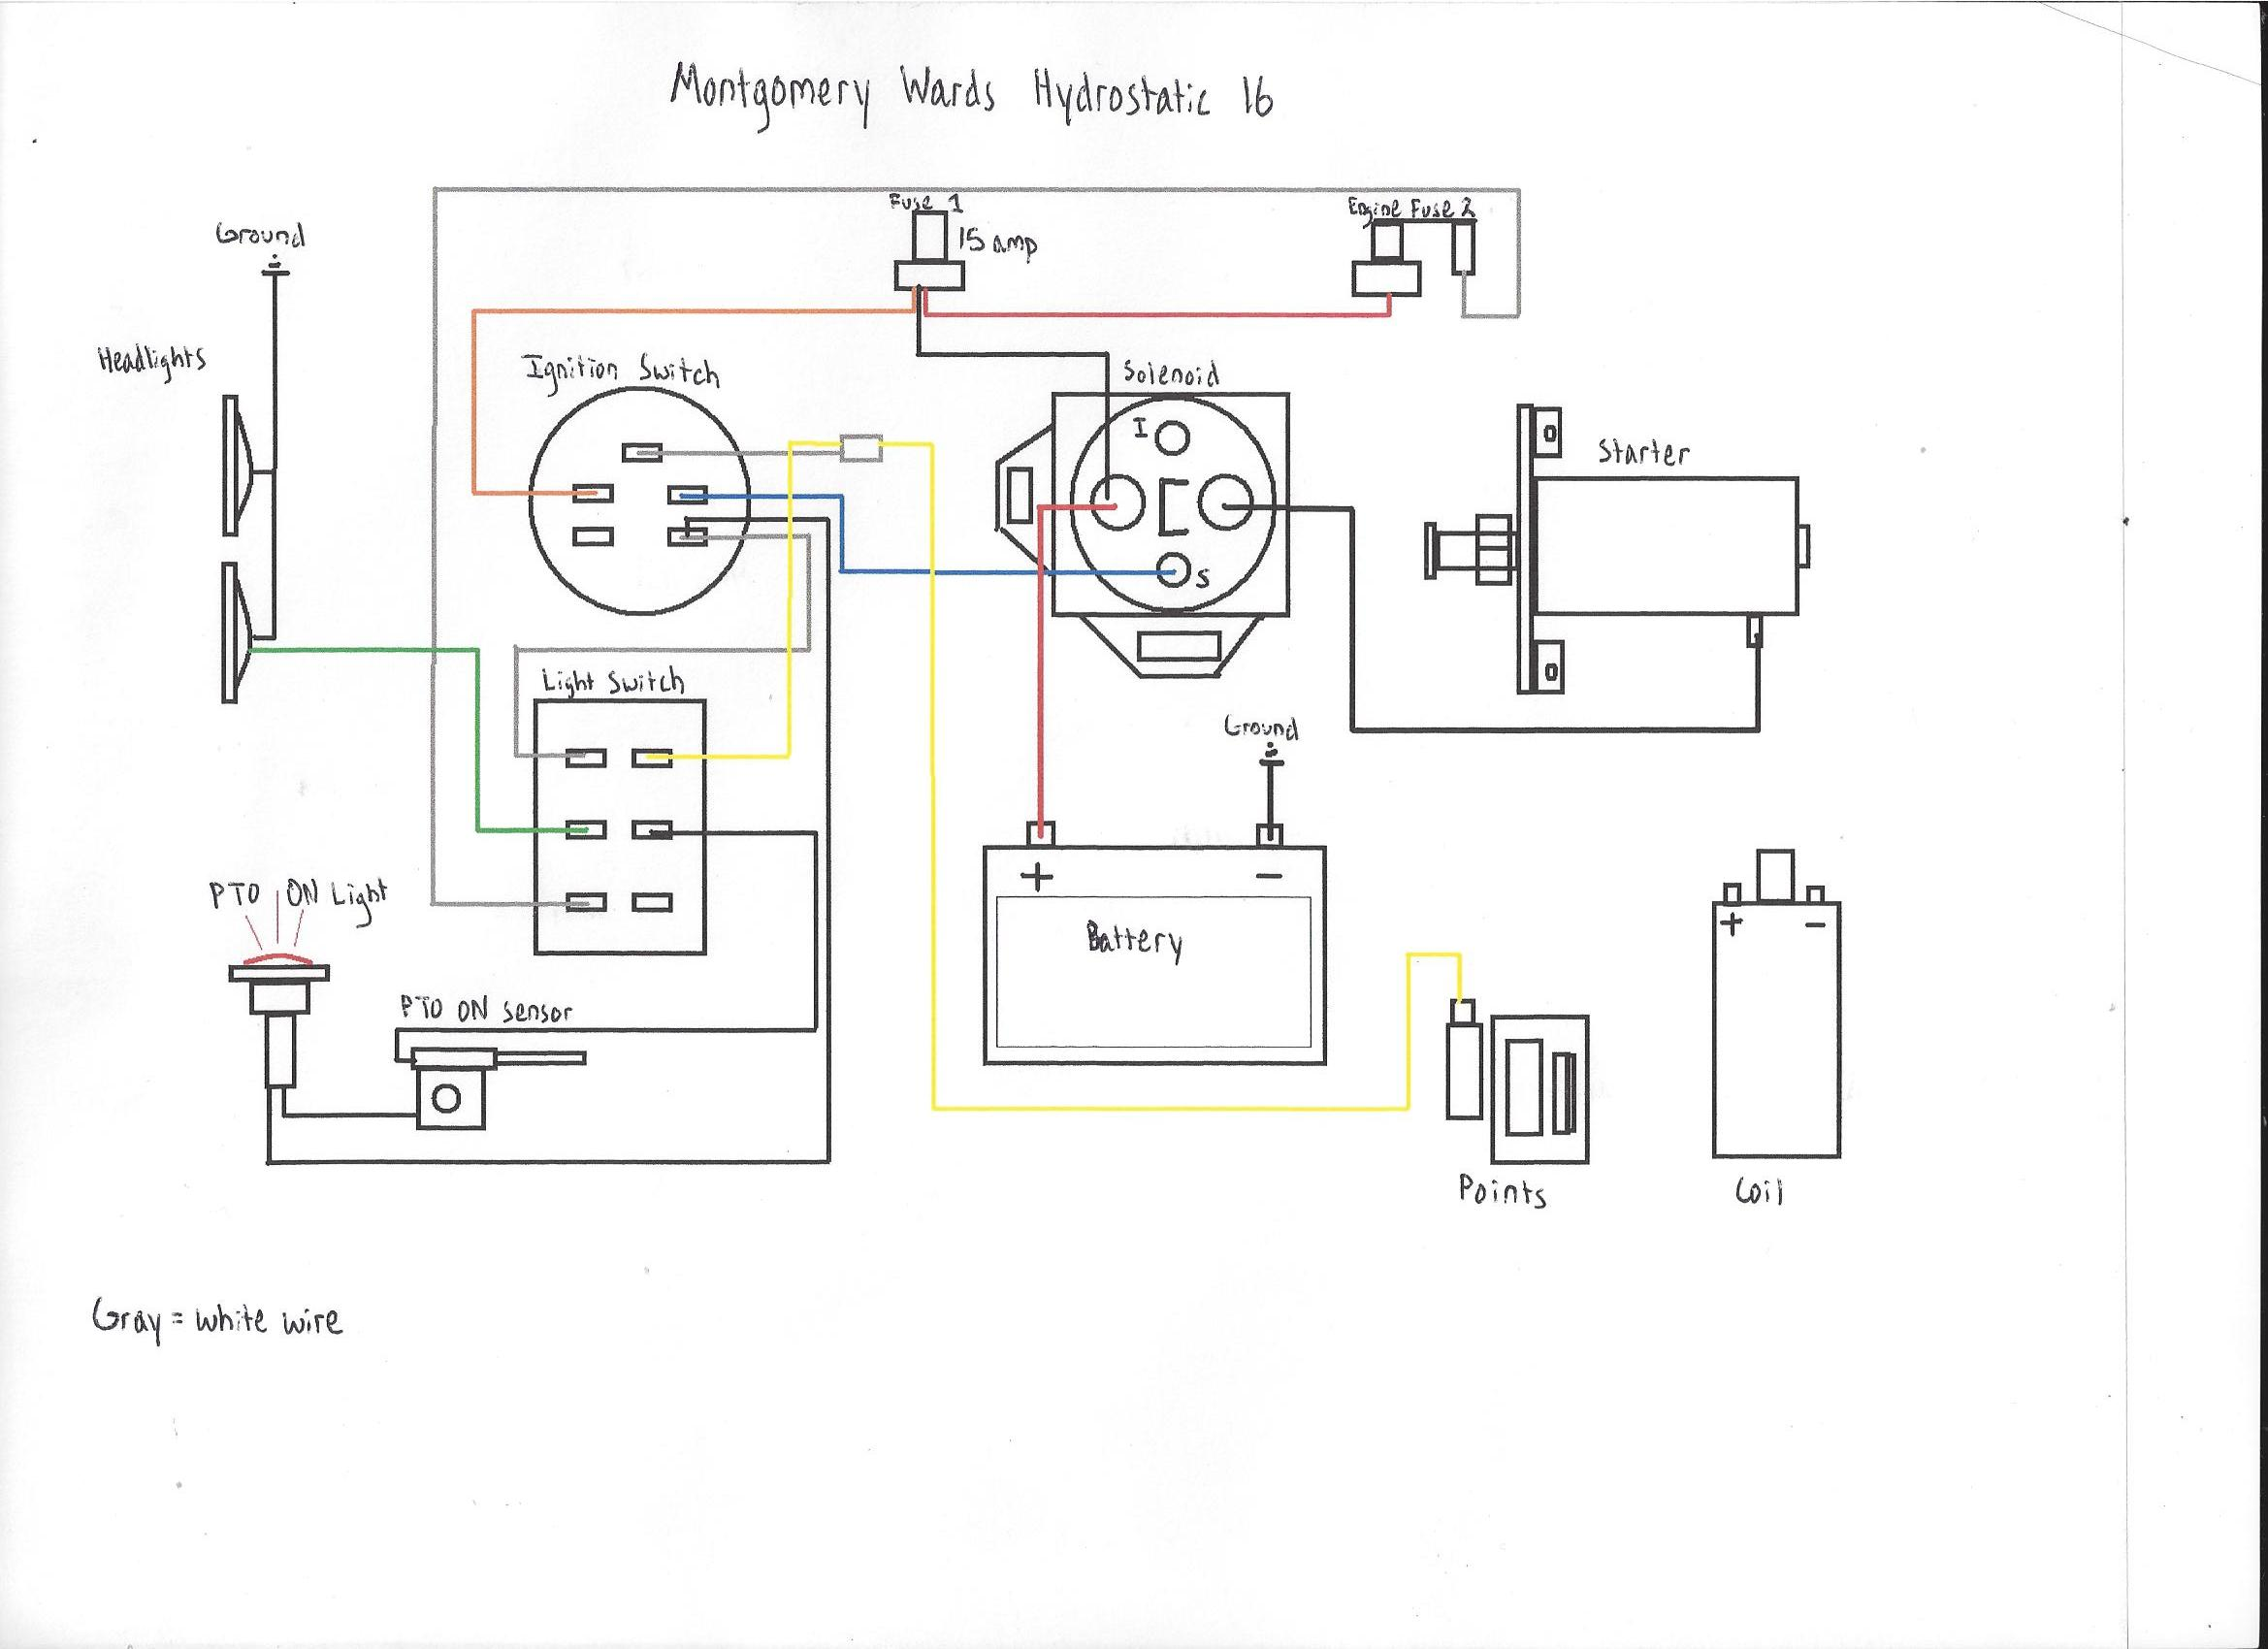 new to me montgomery wards hydrostatic 16 page 2 click image for larger version m wards wiring diagram jpg